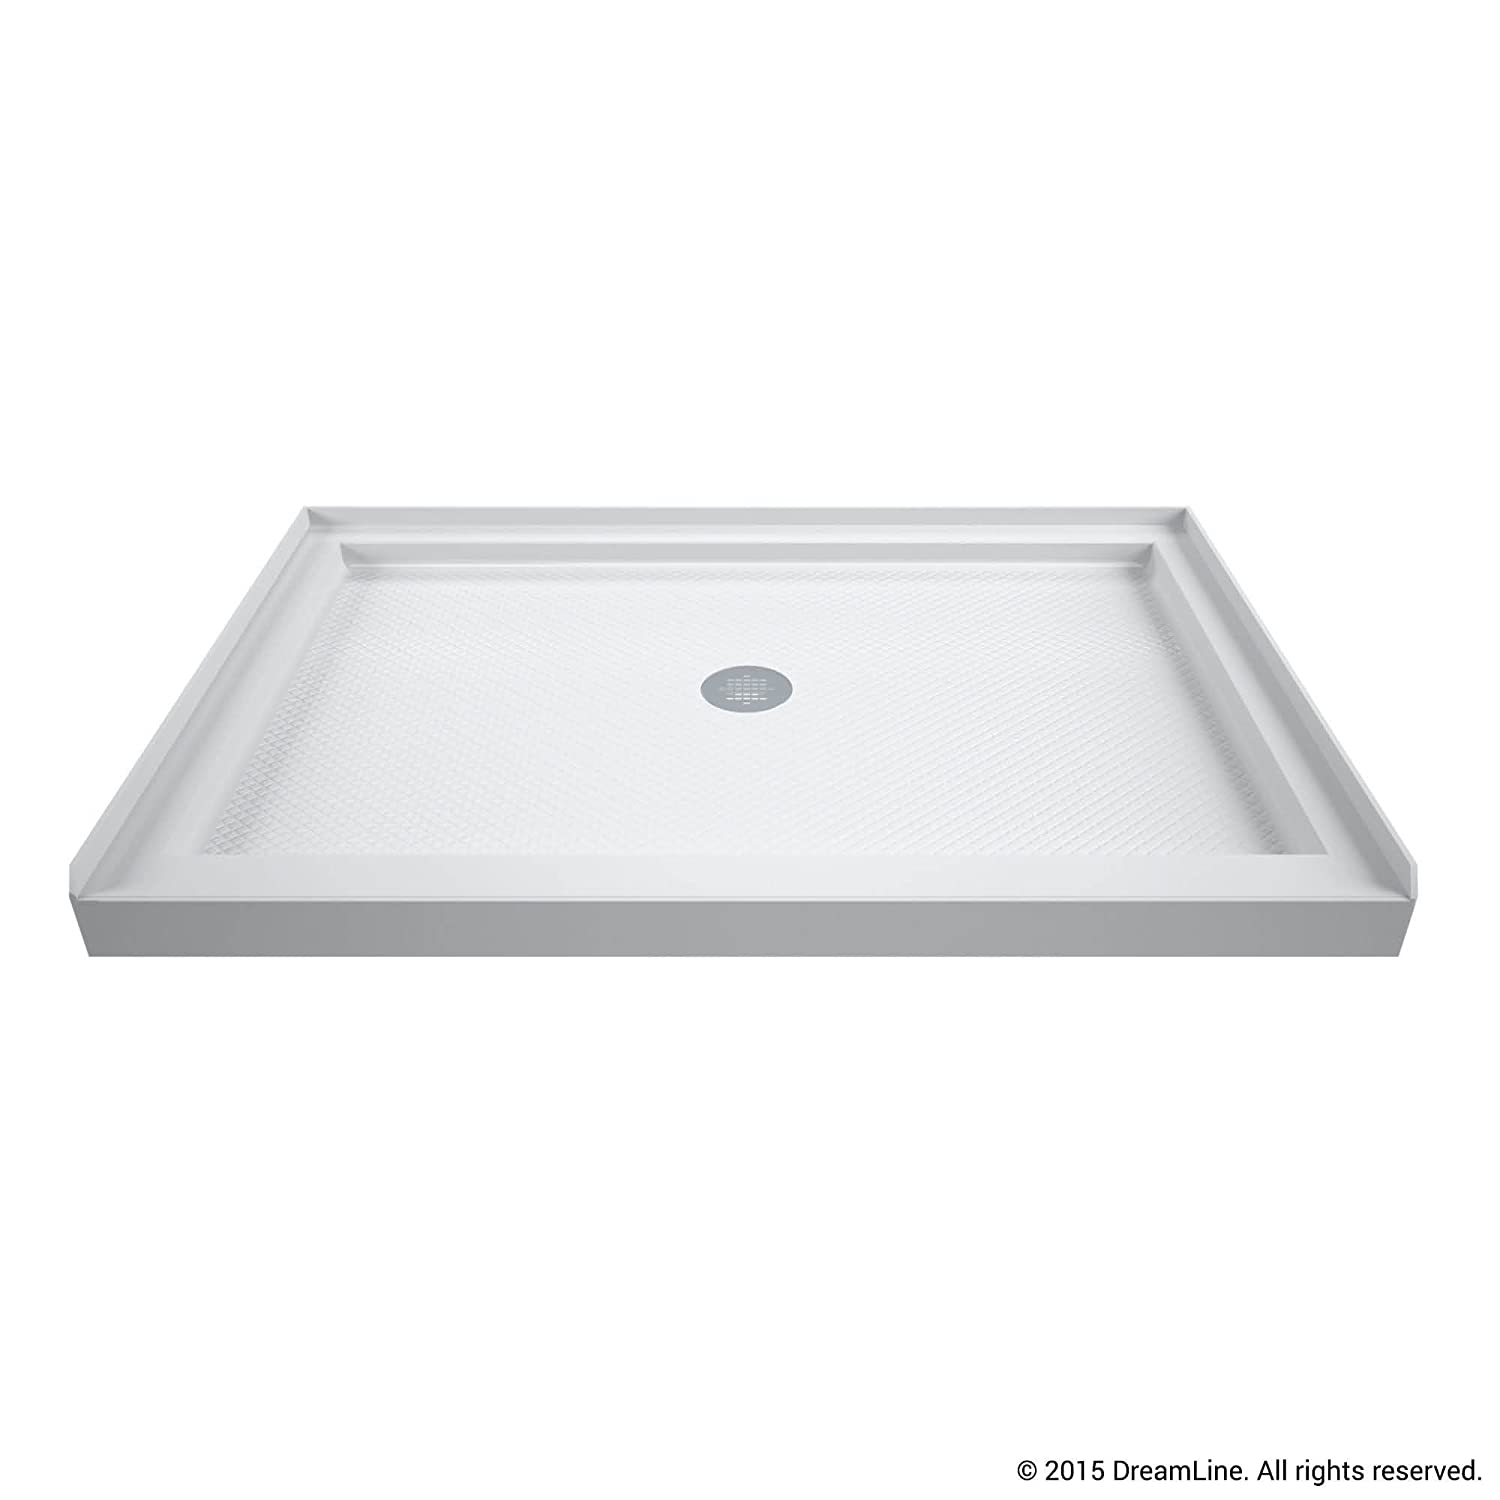 DreamLine SlimLine 32 in. D x 48 in. W x 2 3/4 in. H Center Drain ...